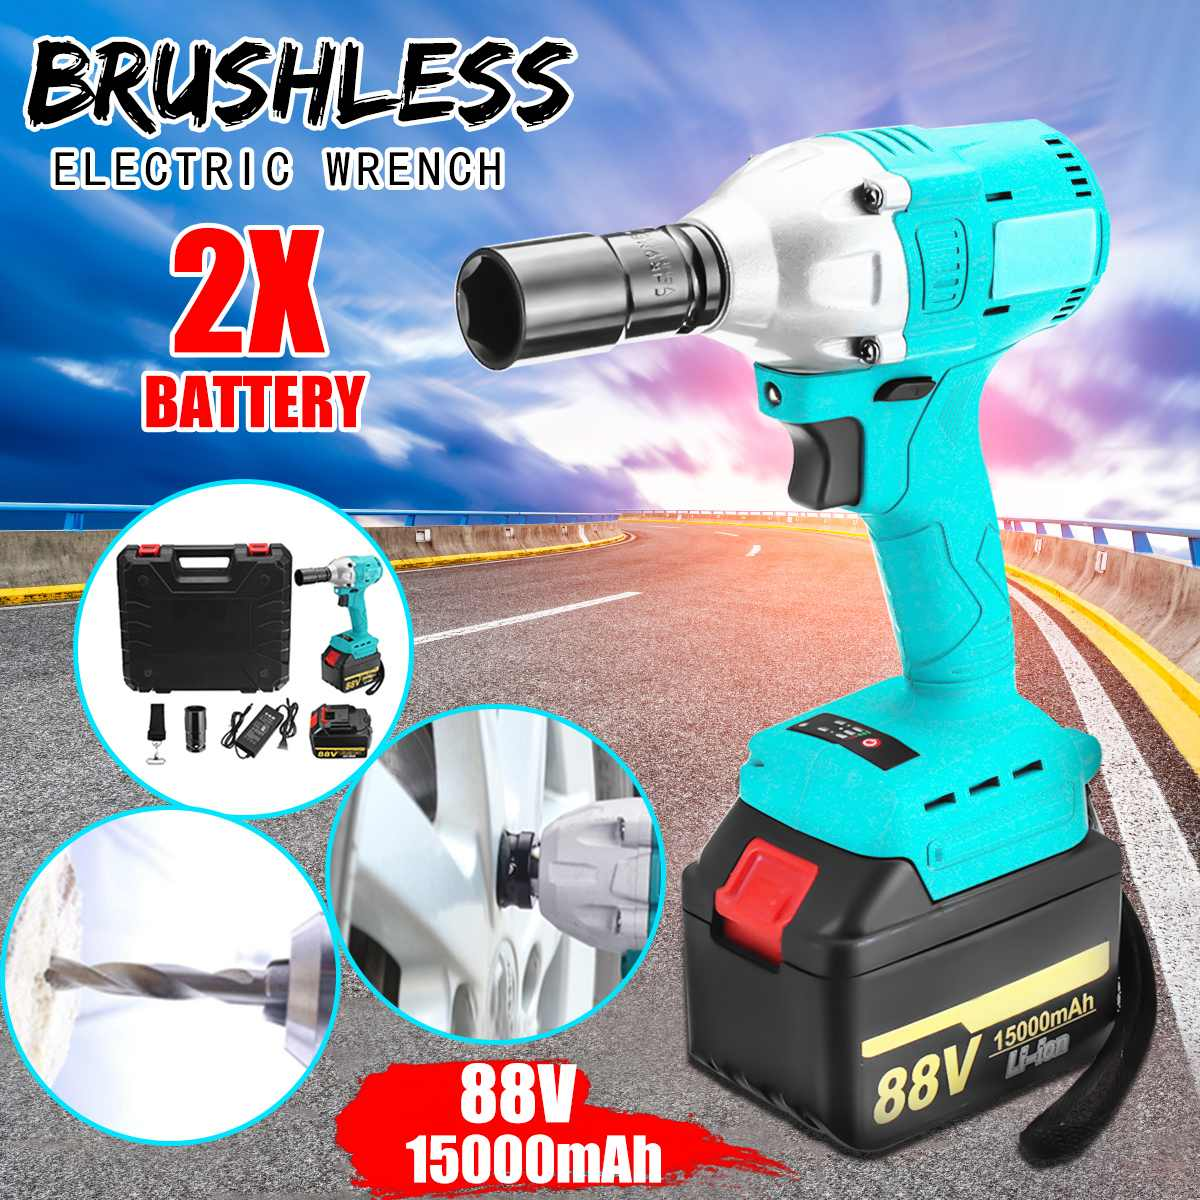 88V 15000mAh Battery Brushless Electric Wrench Dual Speed Impact Wrench Cordless Rechargeable Electric Impact Drill Power Tools cordless electric wrench 21v lithium battery brushless impact electric wrench 4 0ah industrial grade rechargeable power tools